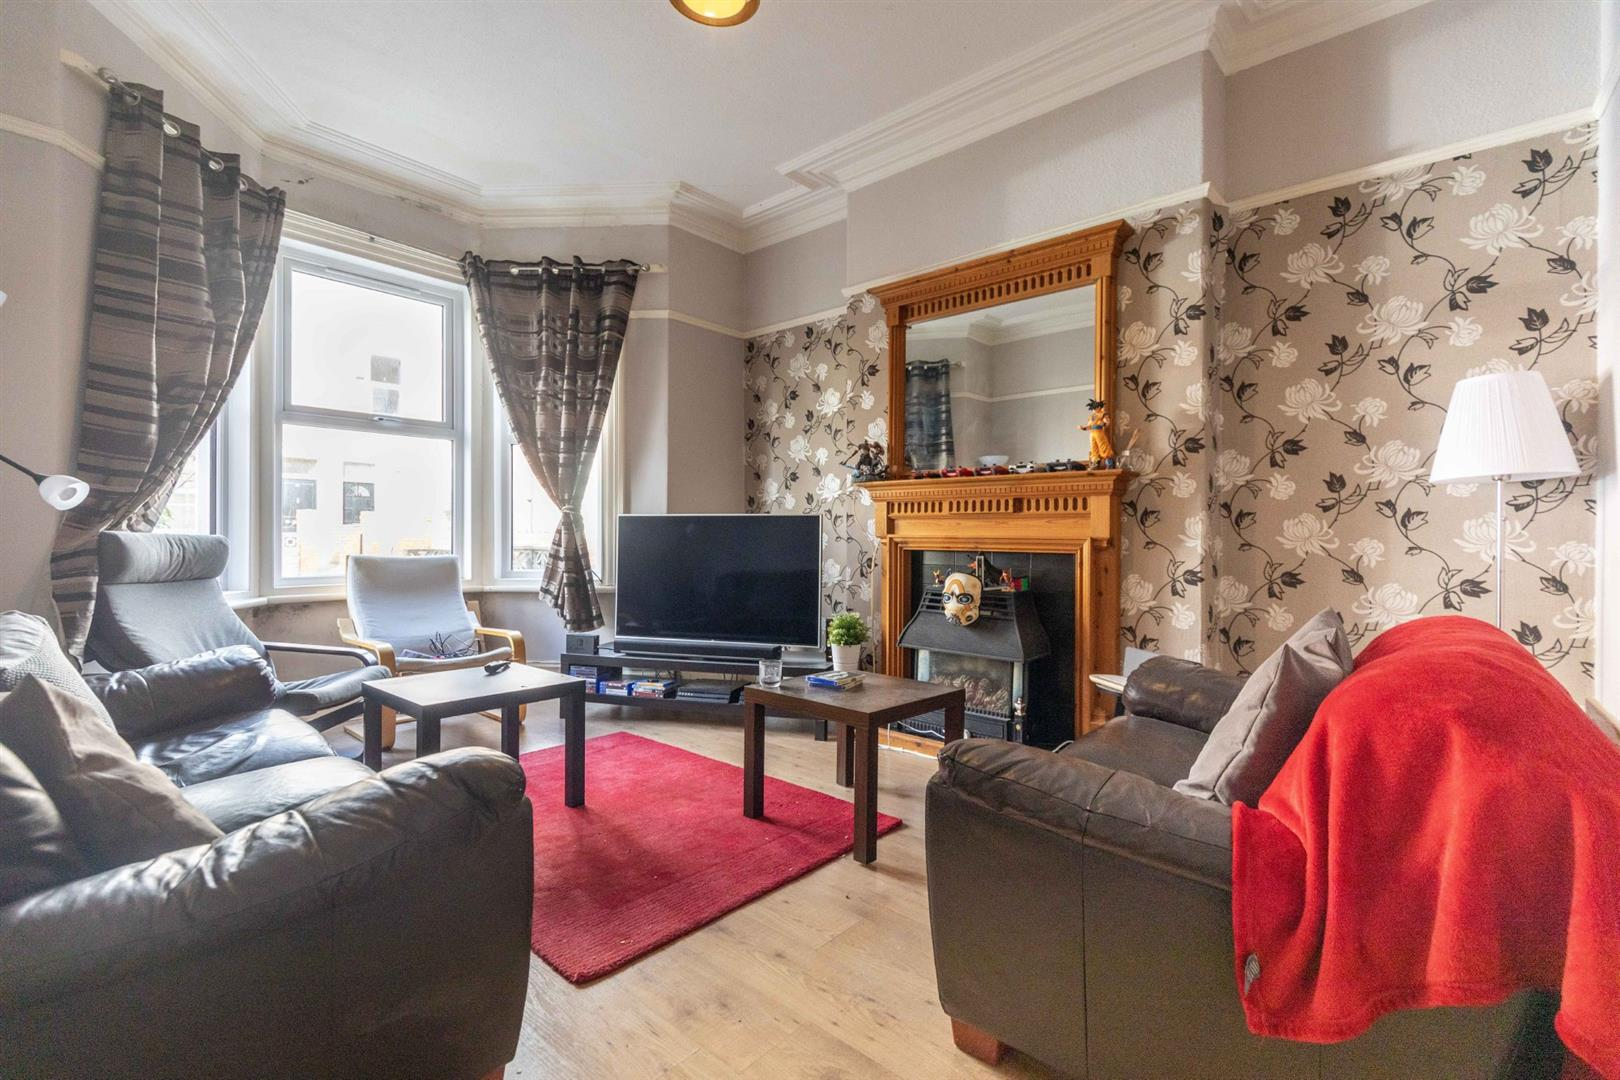 4 bed end of terrace house to rent in Newcastle Upon Tyne, NE6 5NS  - Property Image 1